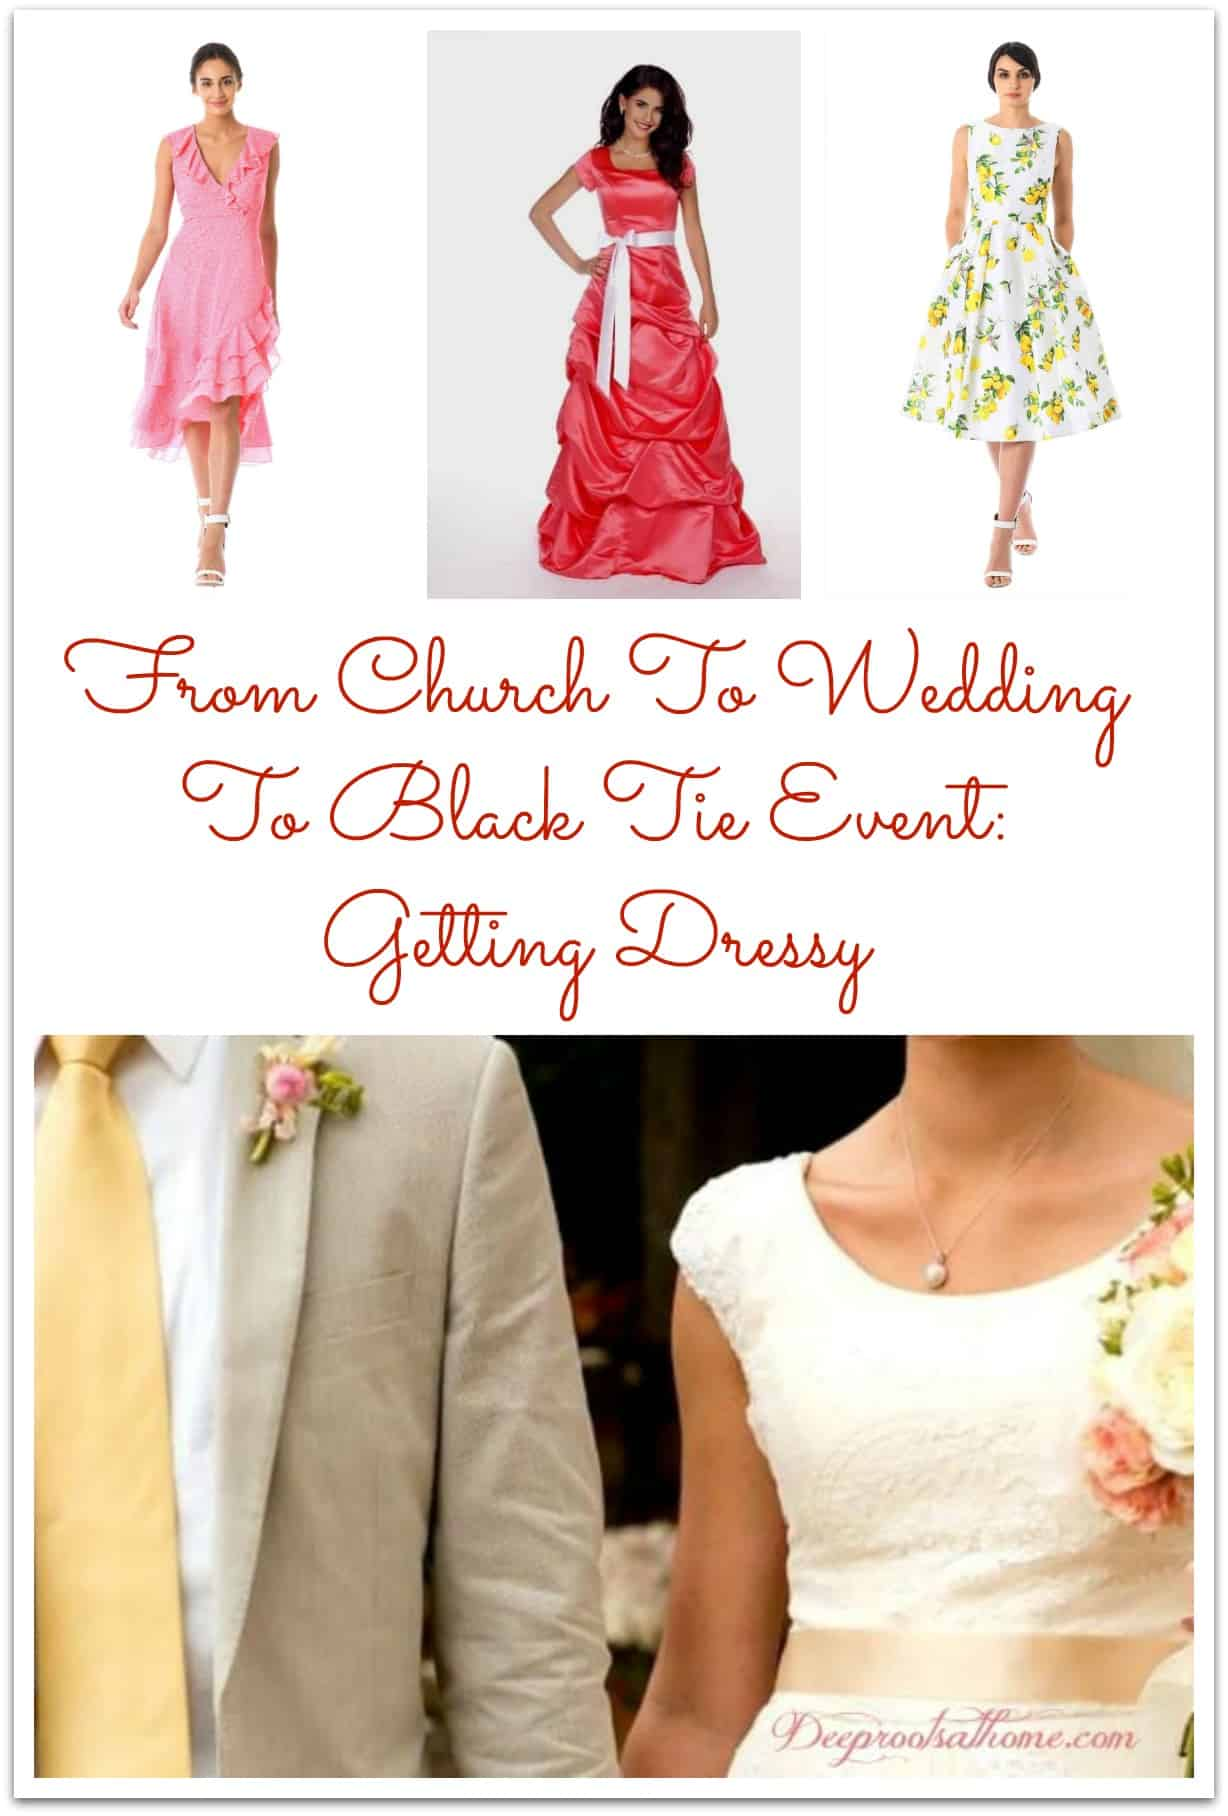 From Church To Wedding To Black Tie Event: Getting Dress. A bride in her wedding dress and the groom in his linen suit.